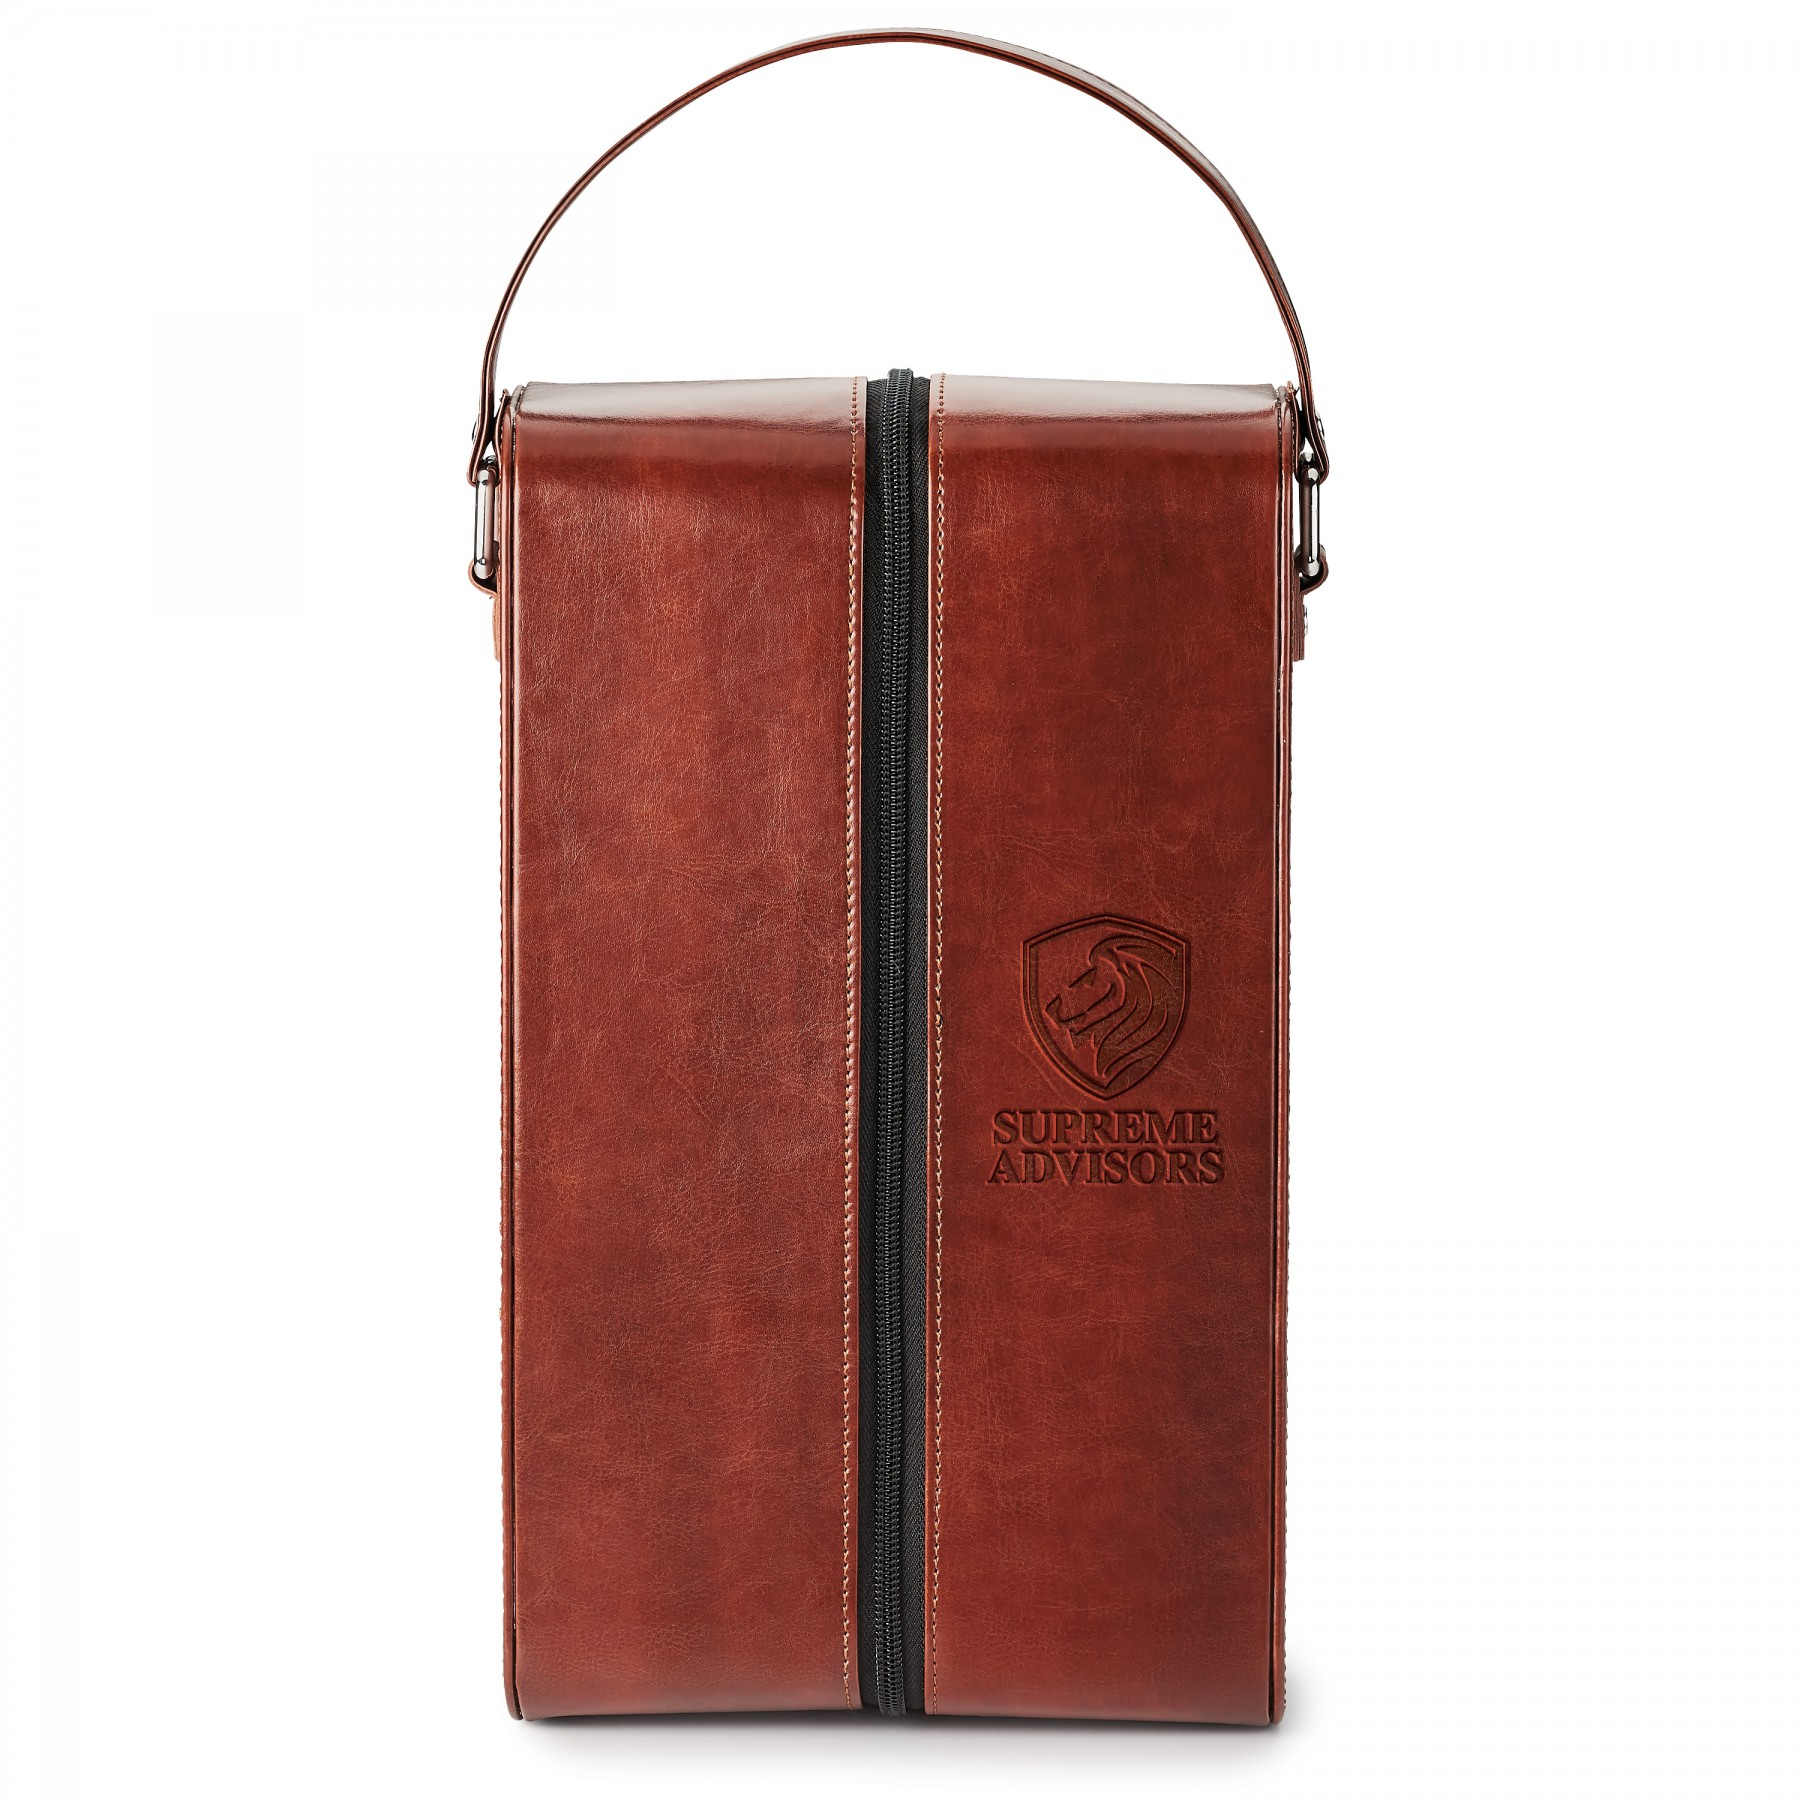 Fabrizio Dual Wine Carrying Case, SH101, Debossed Logo